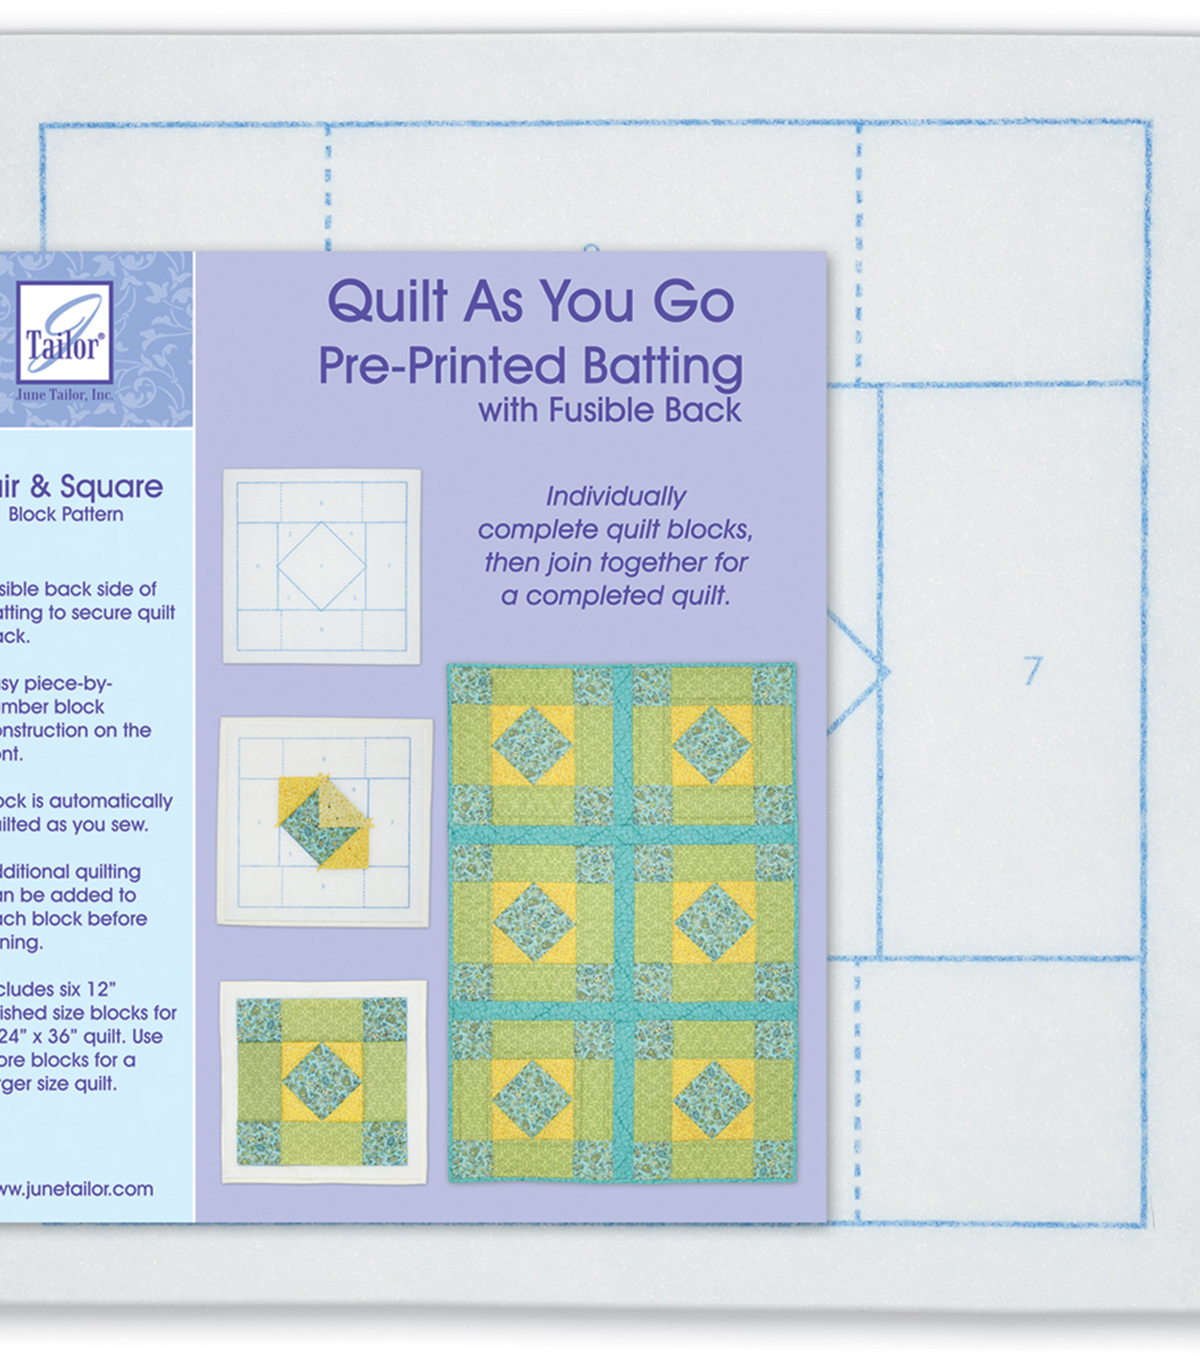 Quilt As You Go Fair And Square